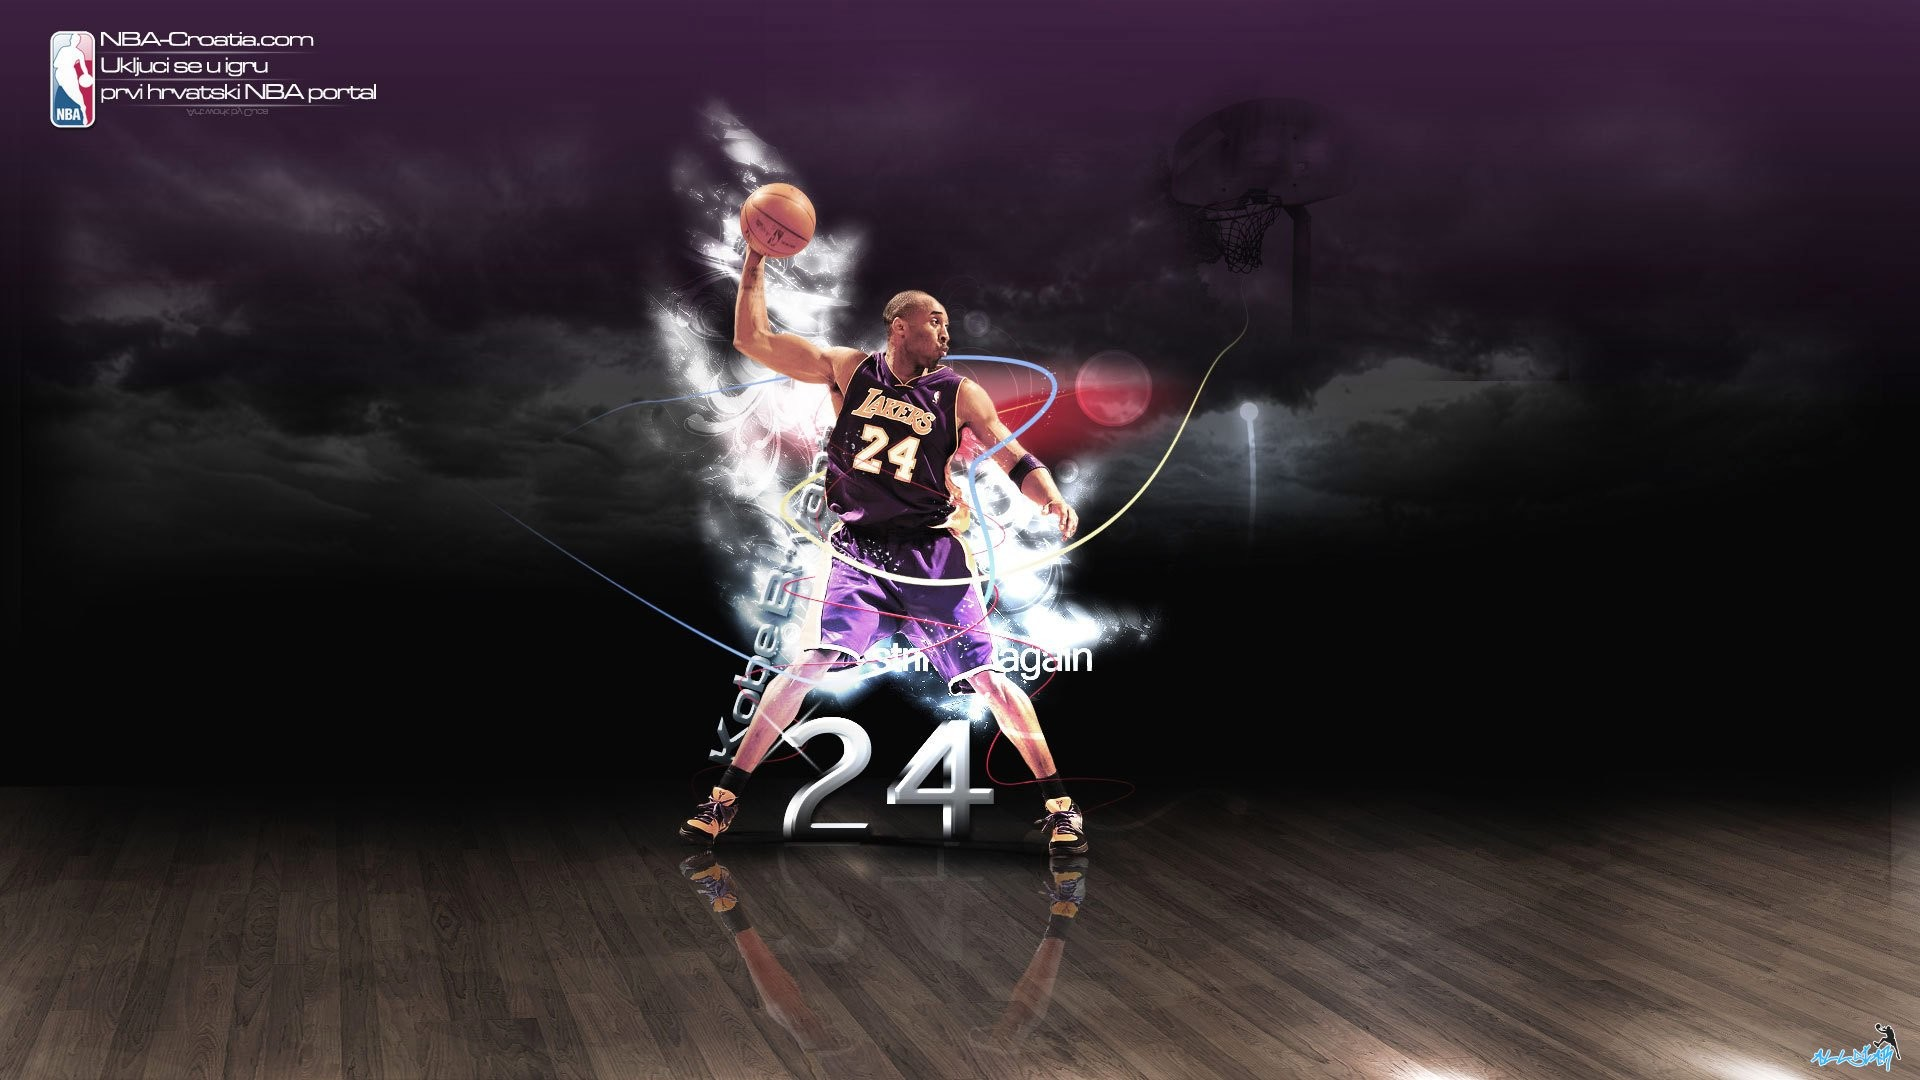 Cool basketball wallpapers hd 61 images - Cool basketball wallpapers hd ...